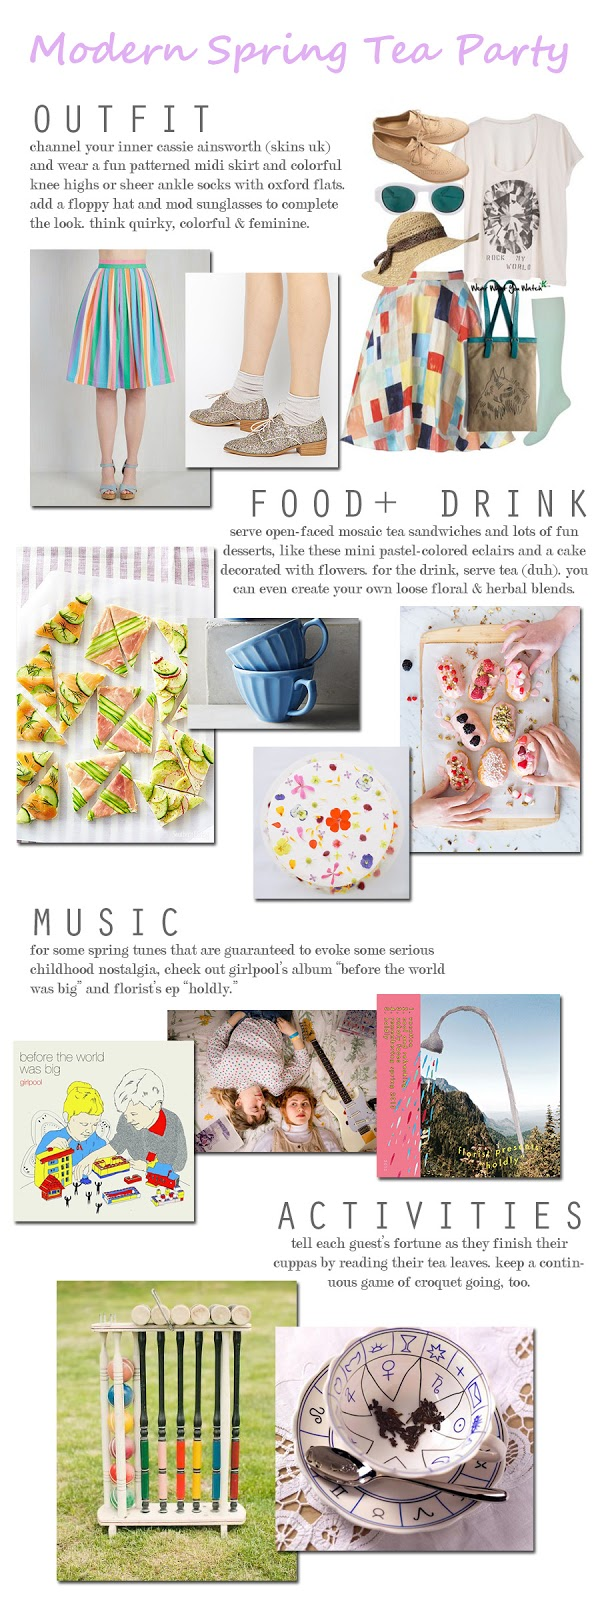 MODERN SPRING TEA PARTY from Honey and Smoke Studio